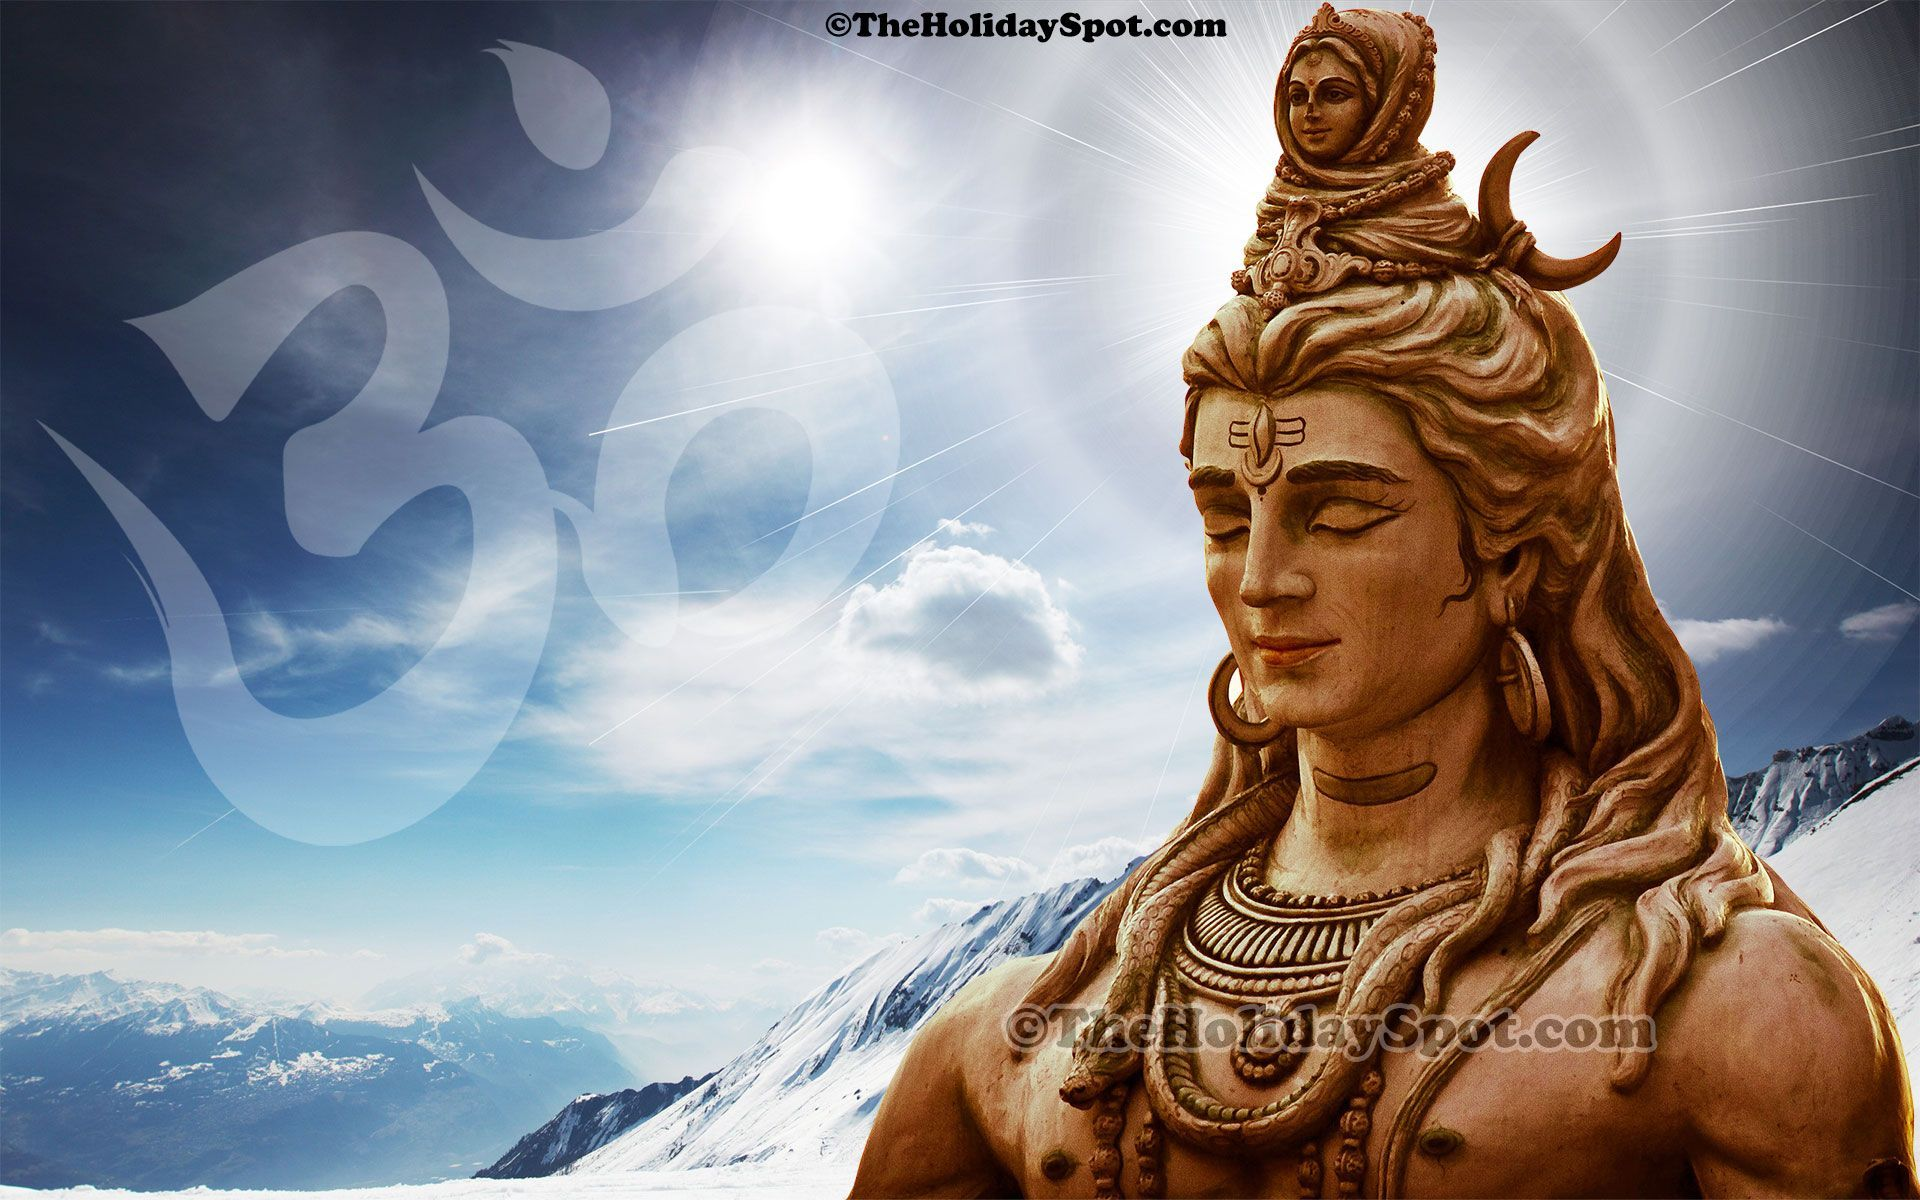 Lord Shiva Hd Wallpapers Top Free Lord Shiva Hd Backgrounds Wallpaperaccess